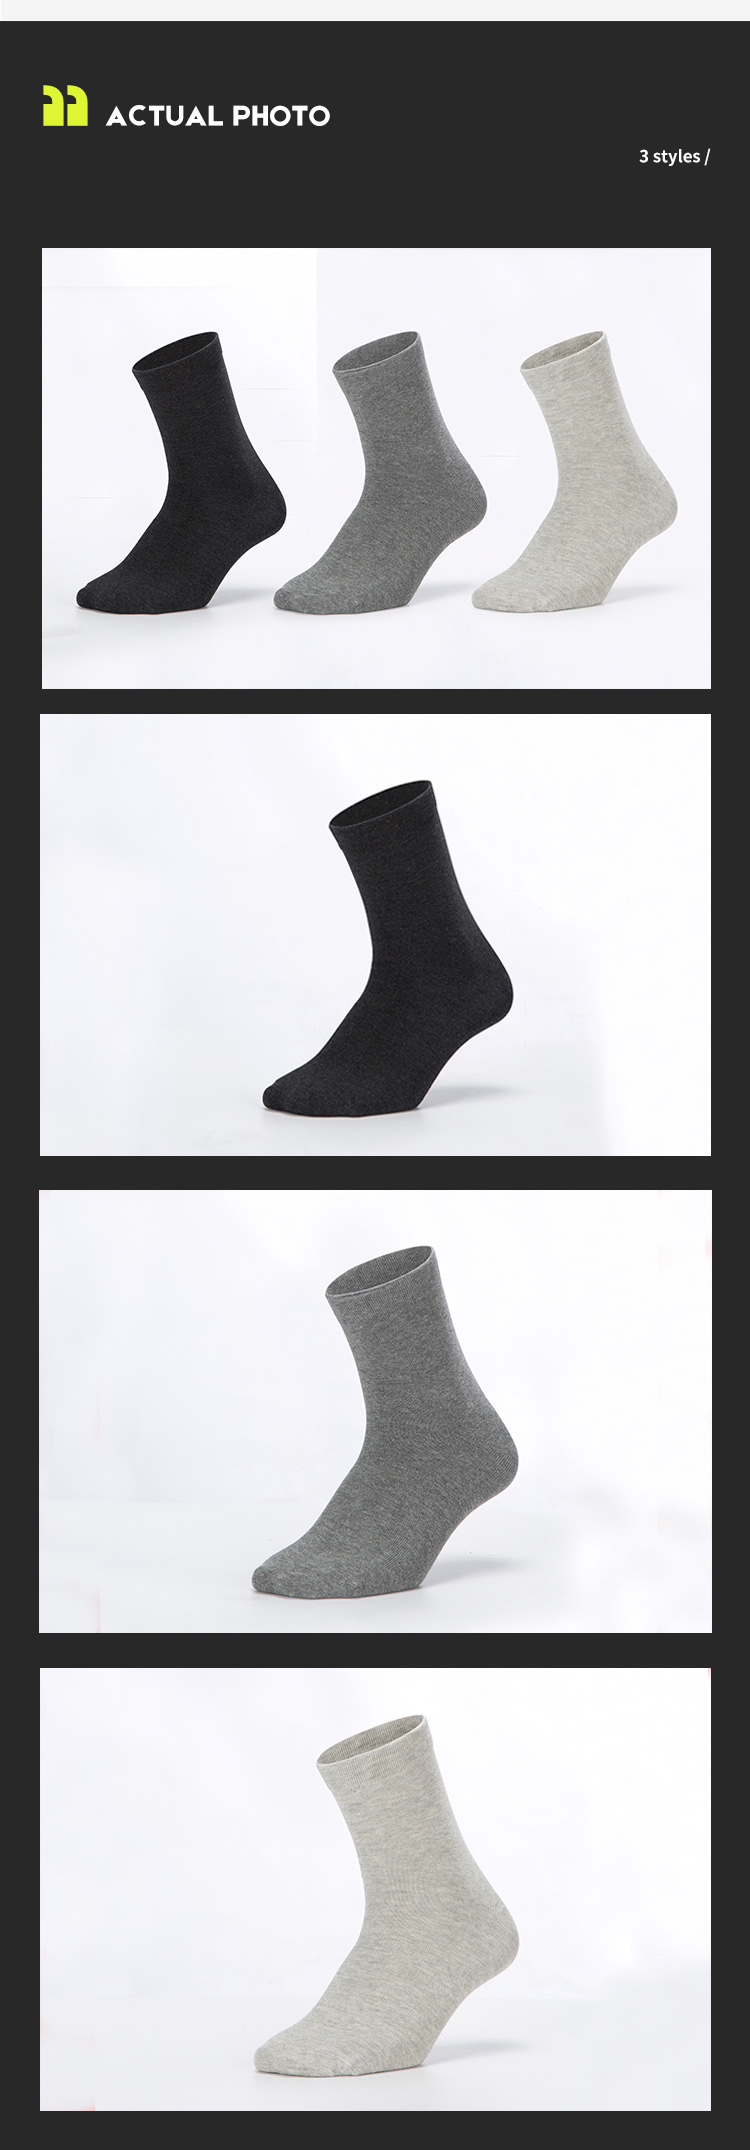 Daily work silver anti-bacterial anti-odor calf men socks